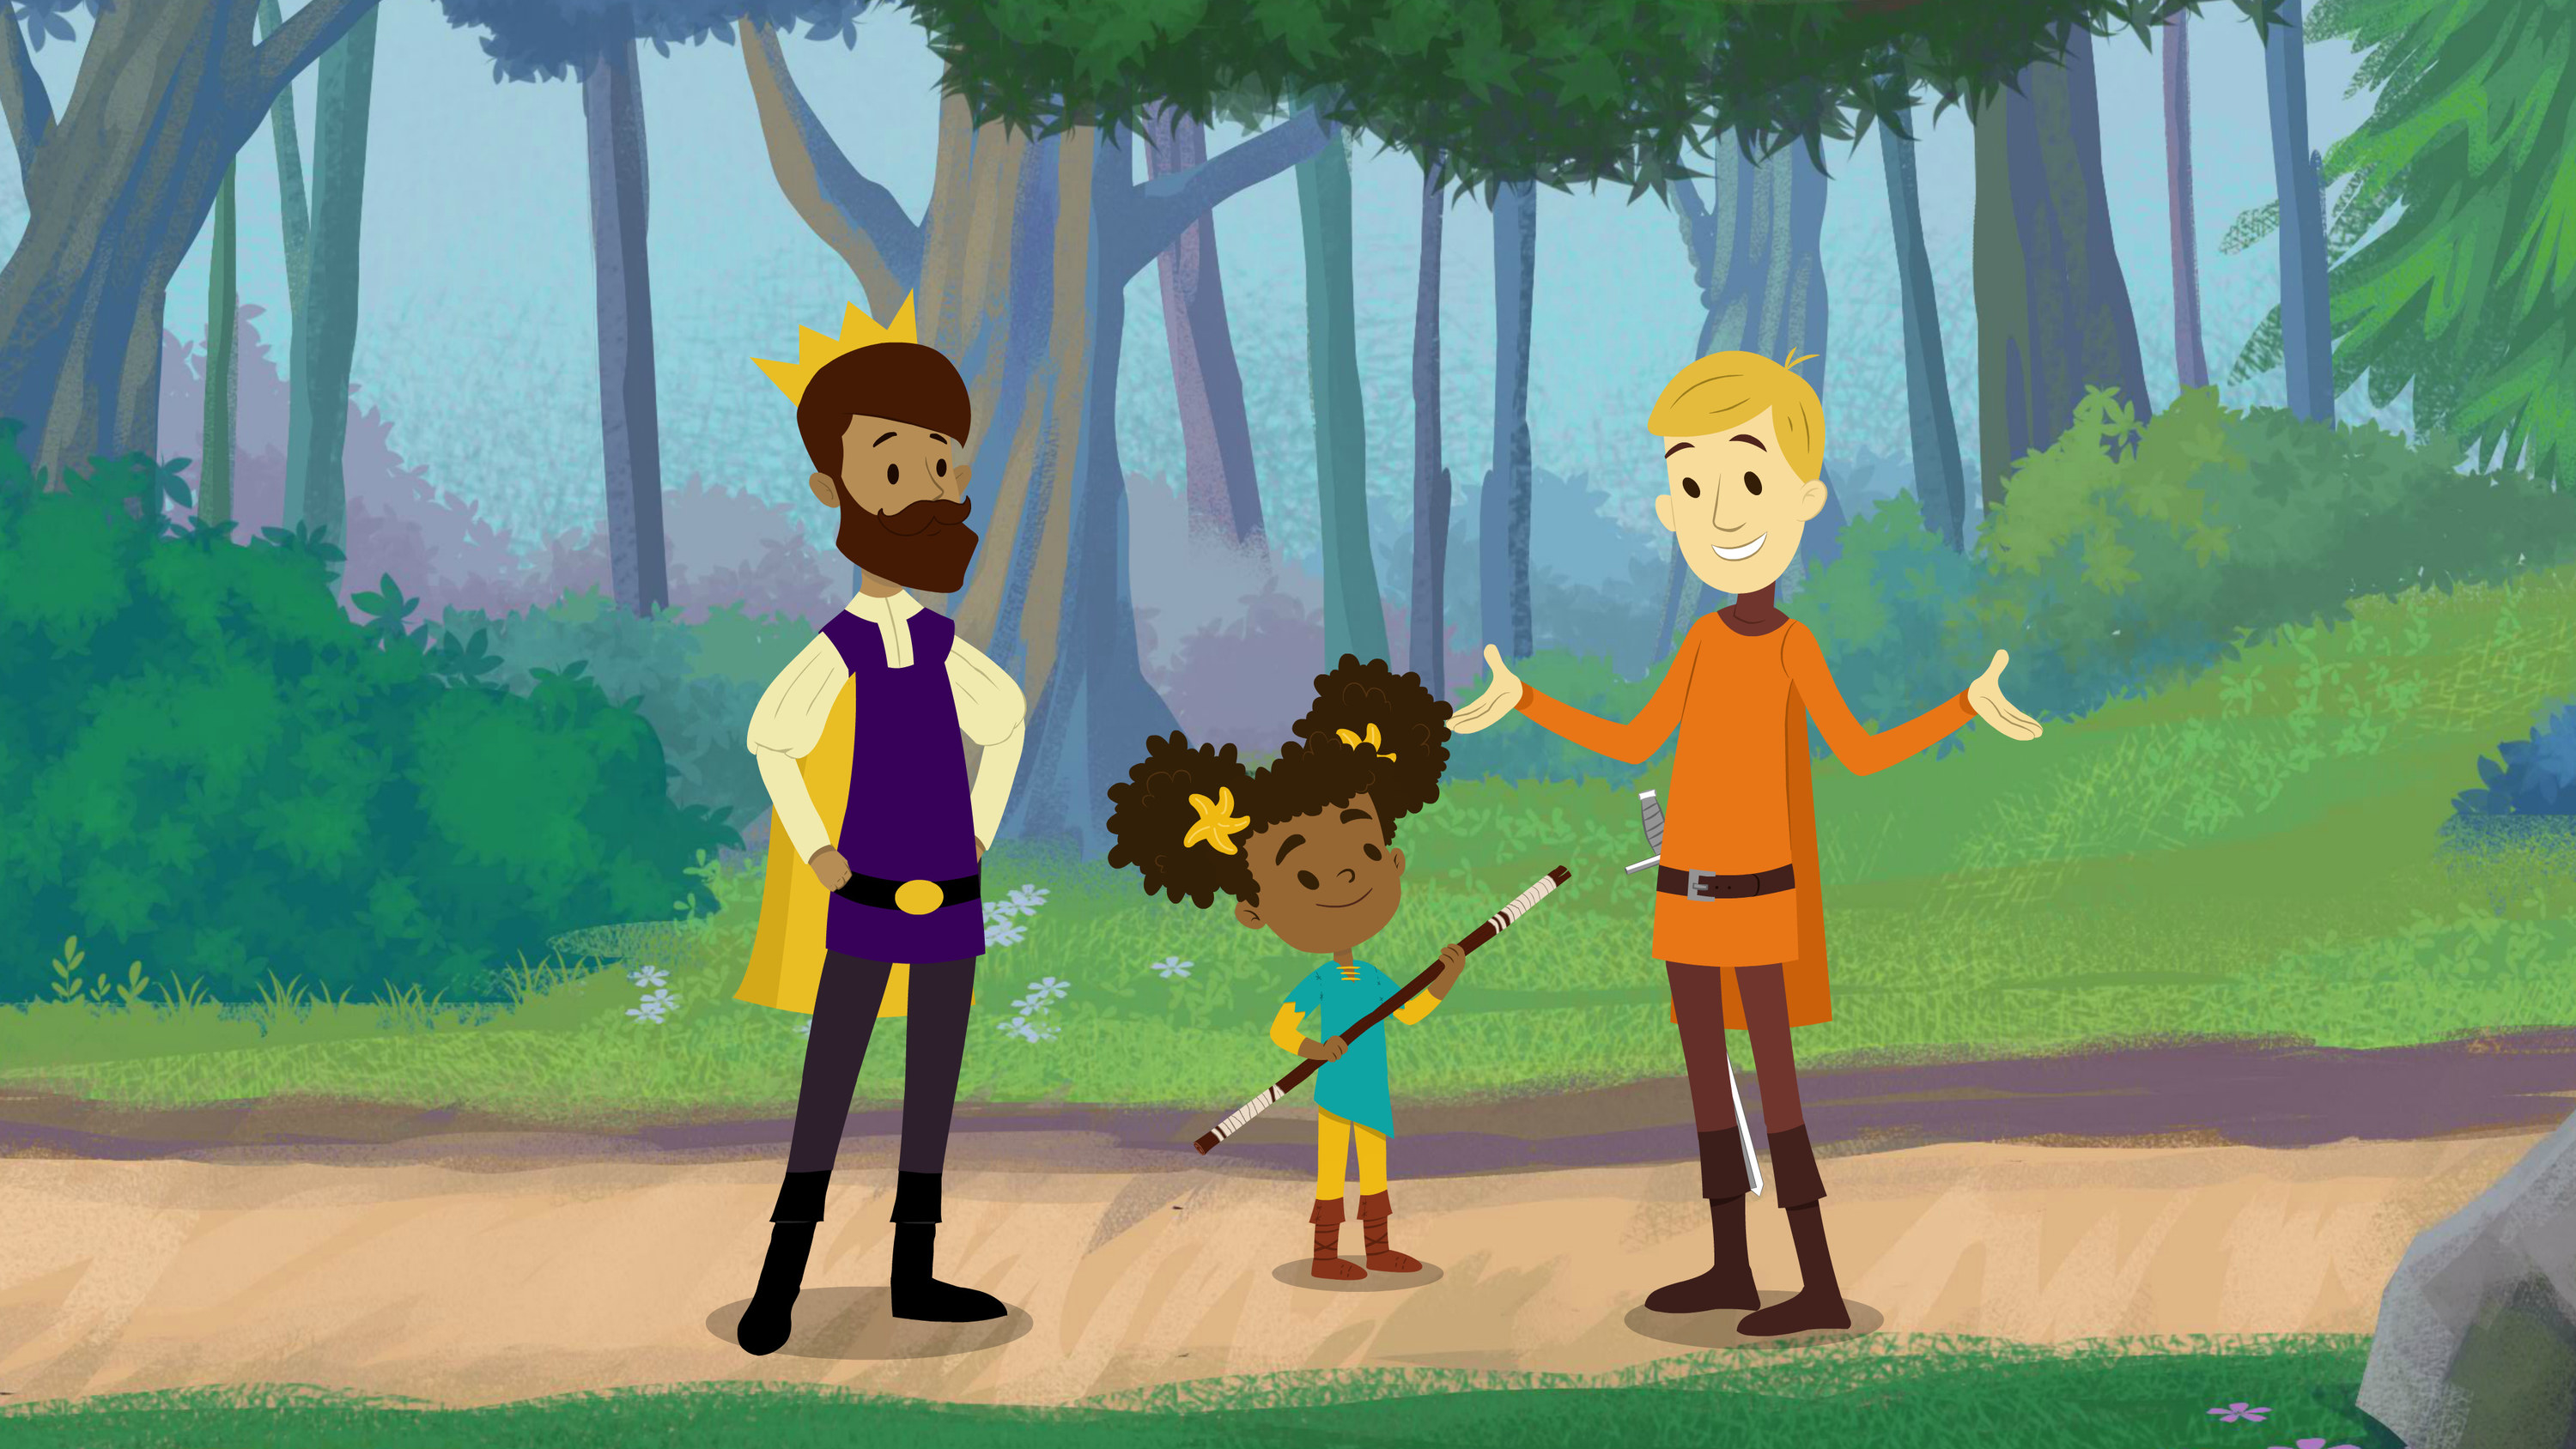 Animated Prince Andrew, Nia, and Sir Cedric speaking